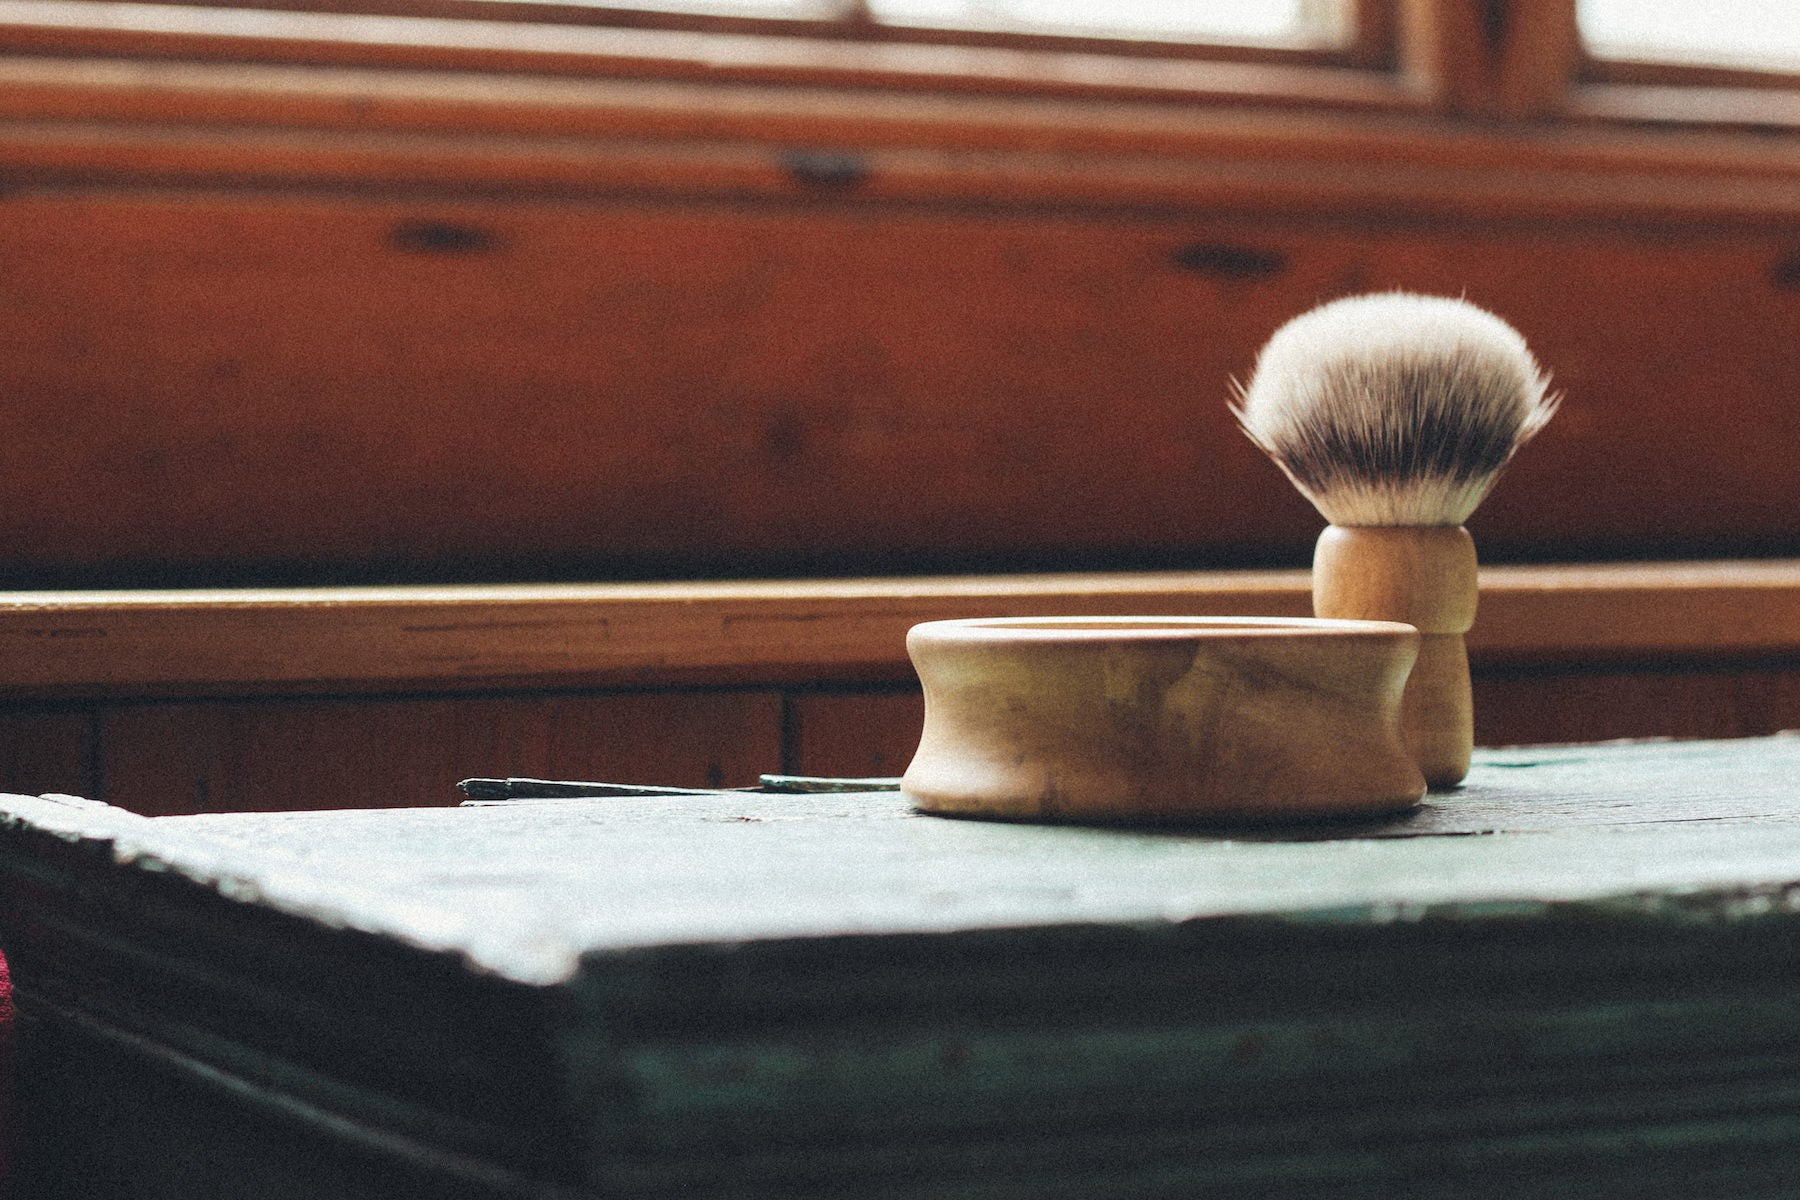 Brush and bowl handmade in Britain for Thomas Clipper.